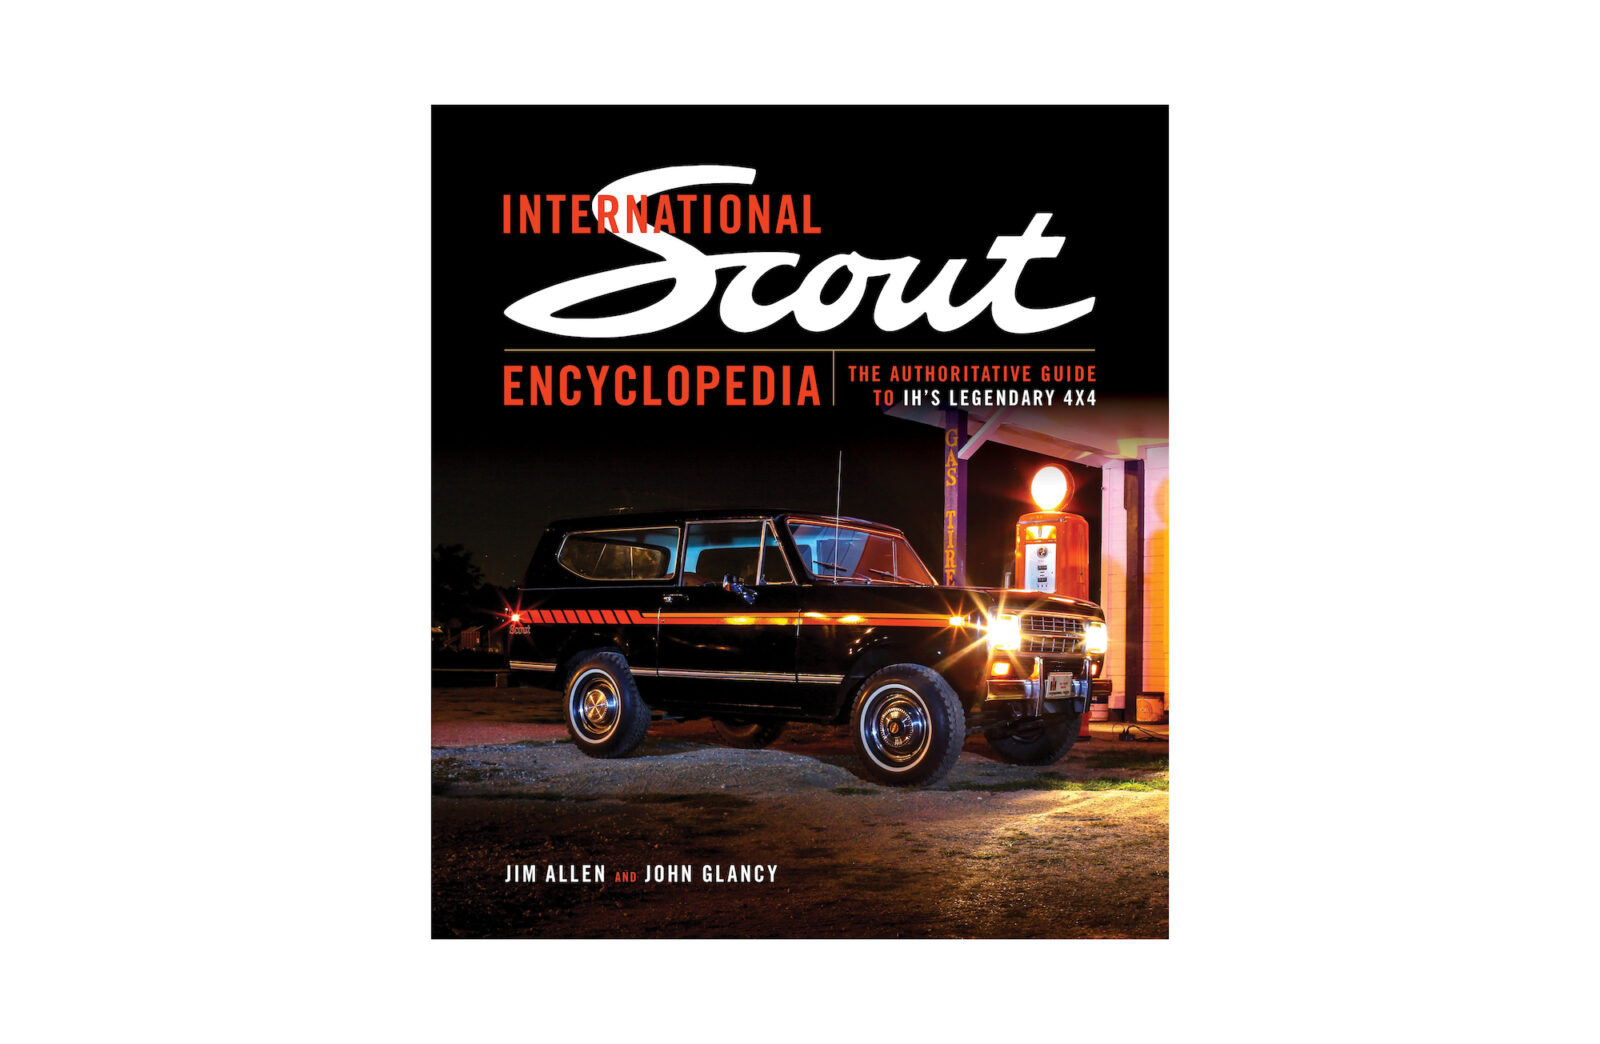 International Scout Encyclopedia 1600x1044 - International Scout Encyclopedia